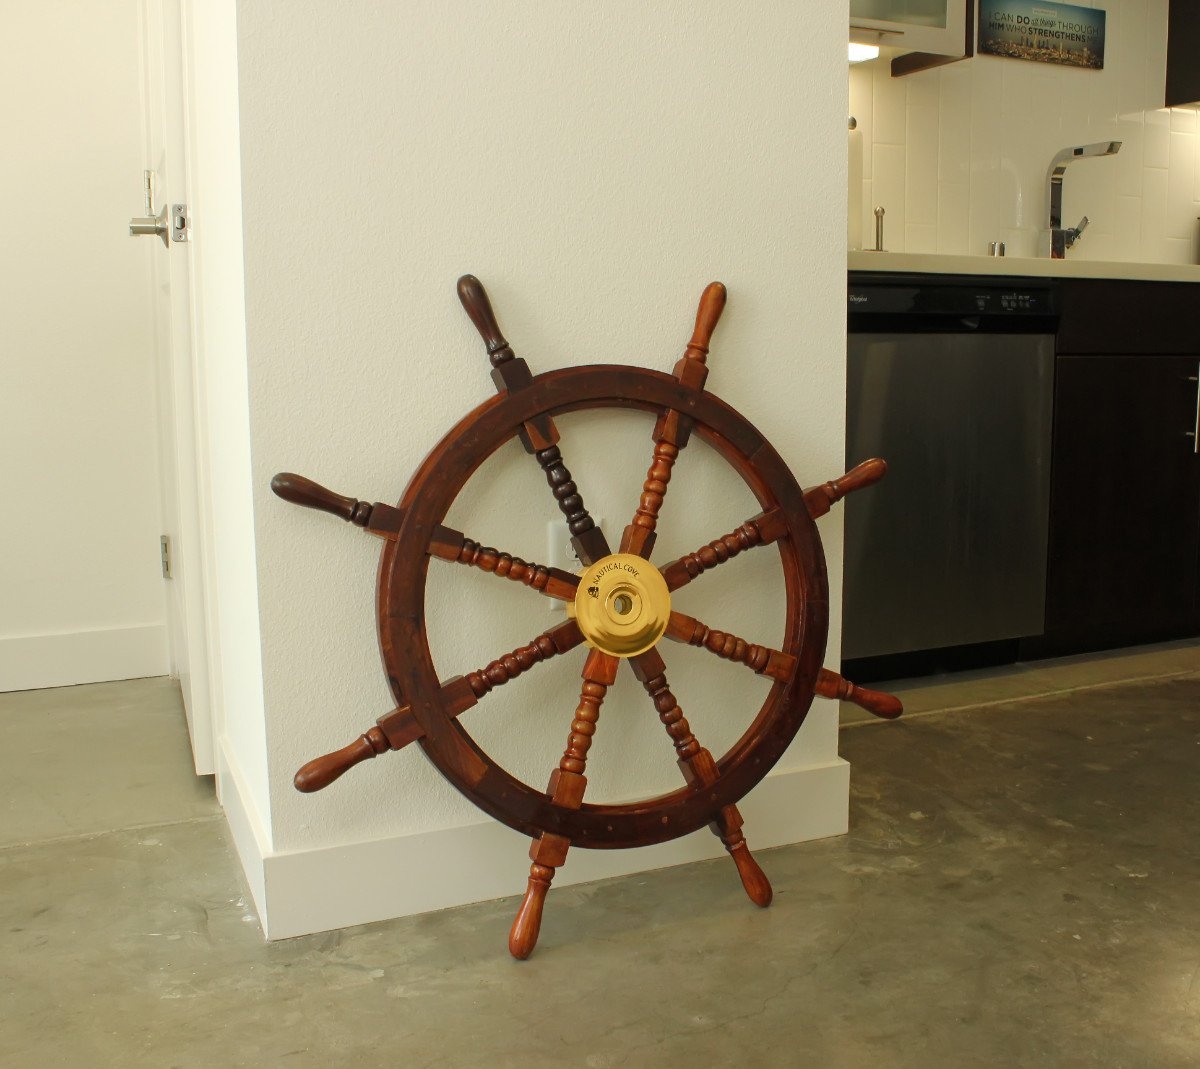 "Nautical Cove Wooden Ship Wheel Pirate Decor, Ships Wheel for Home, Boats, and Walls (36"" Diameter)"